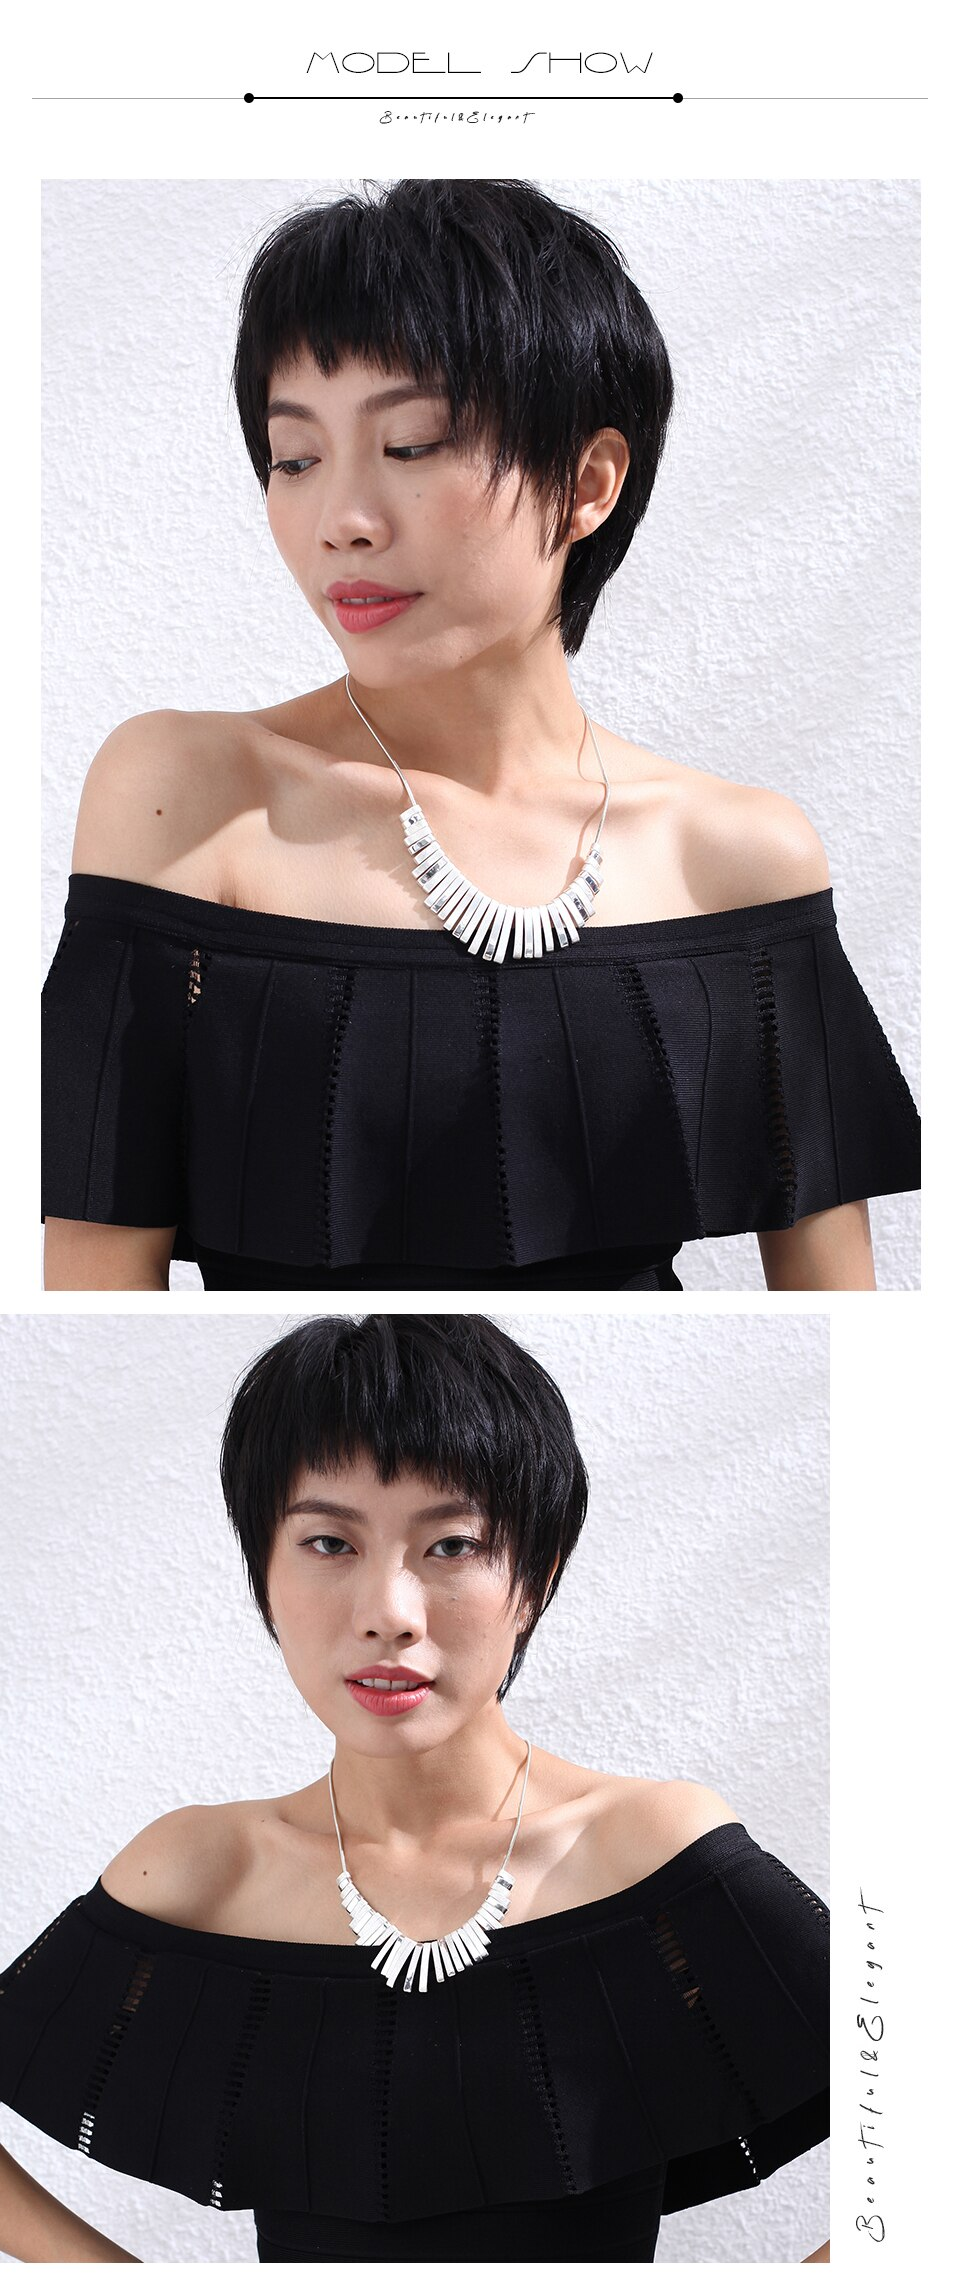 Trendy Choker Necklaces & Pendants Chains Suspension Fashion Necklaces Women's Jewelry On The Neck Decoration Accessories Gifts